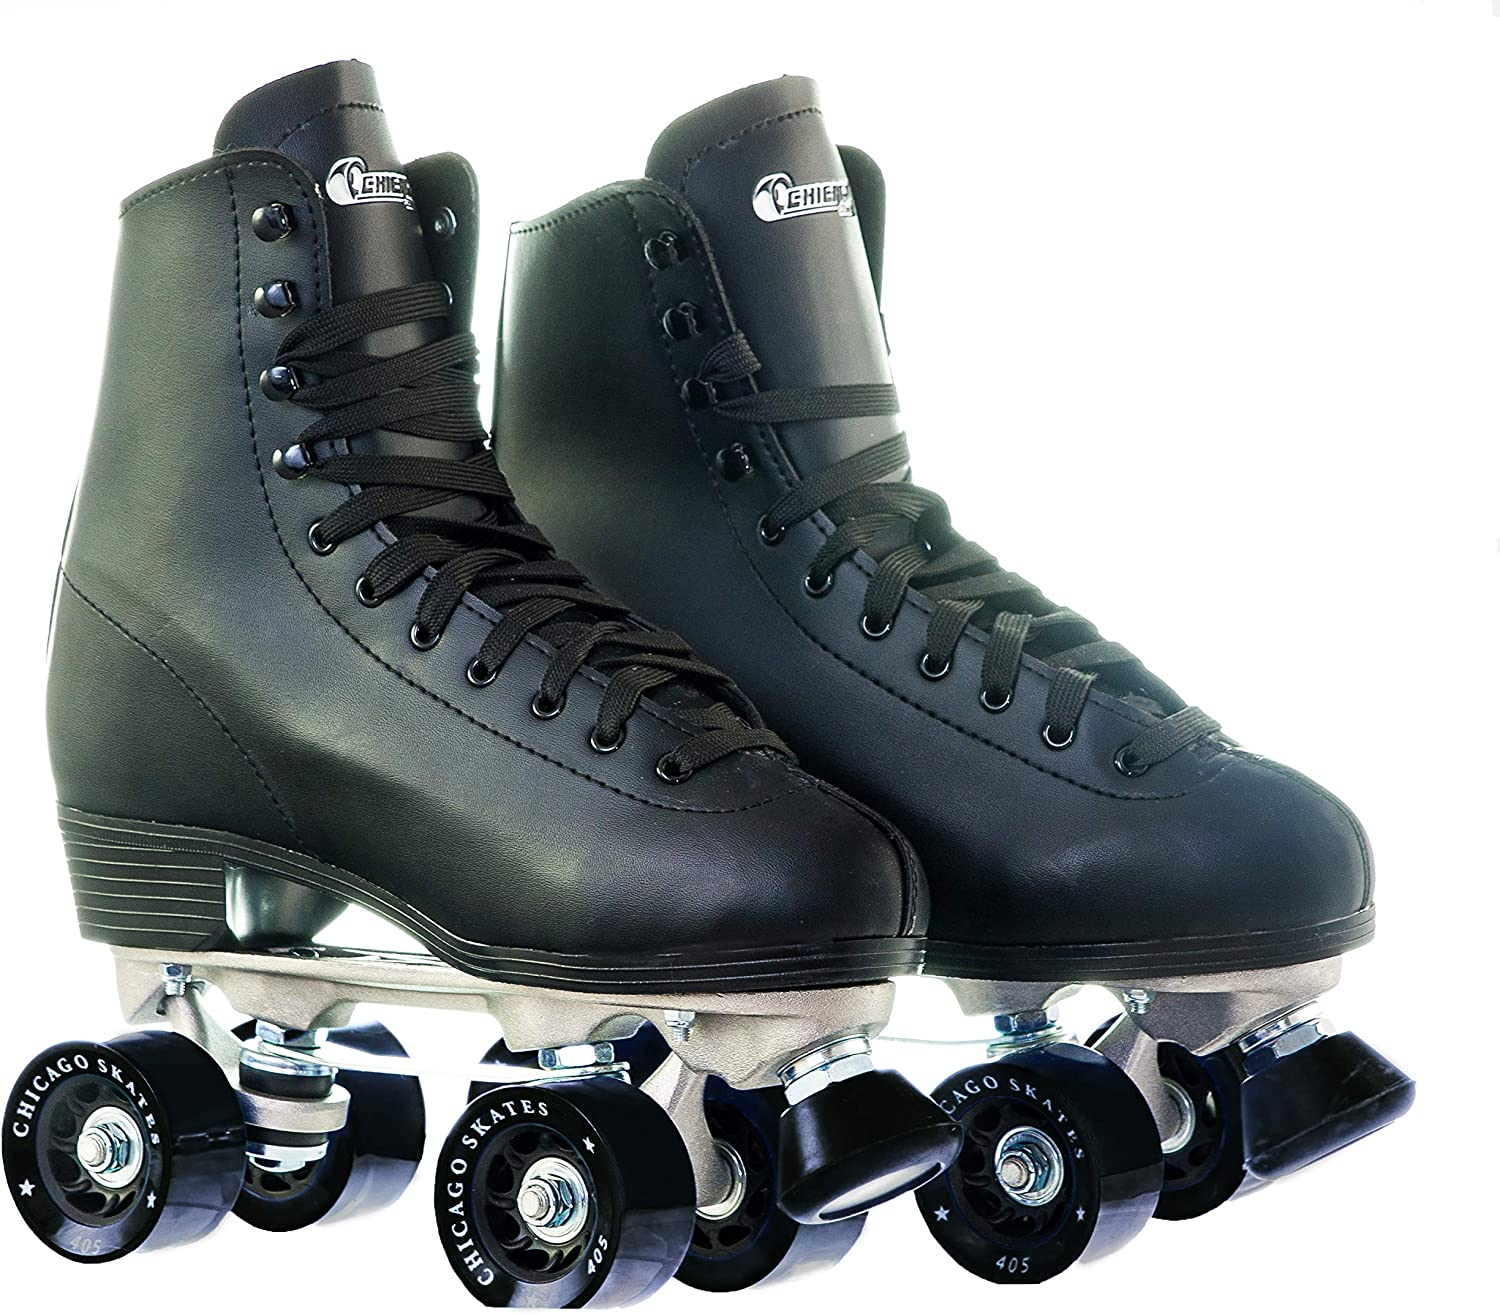 Chicago Men's Premium Leather Lined Rink Roller Skate - Classic Black Quad Skates / US